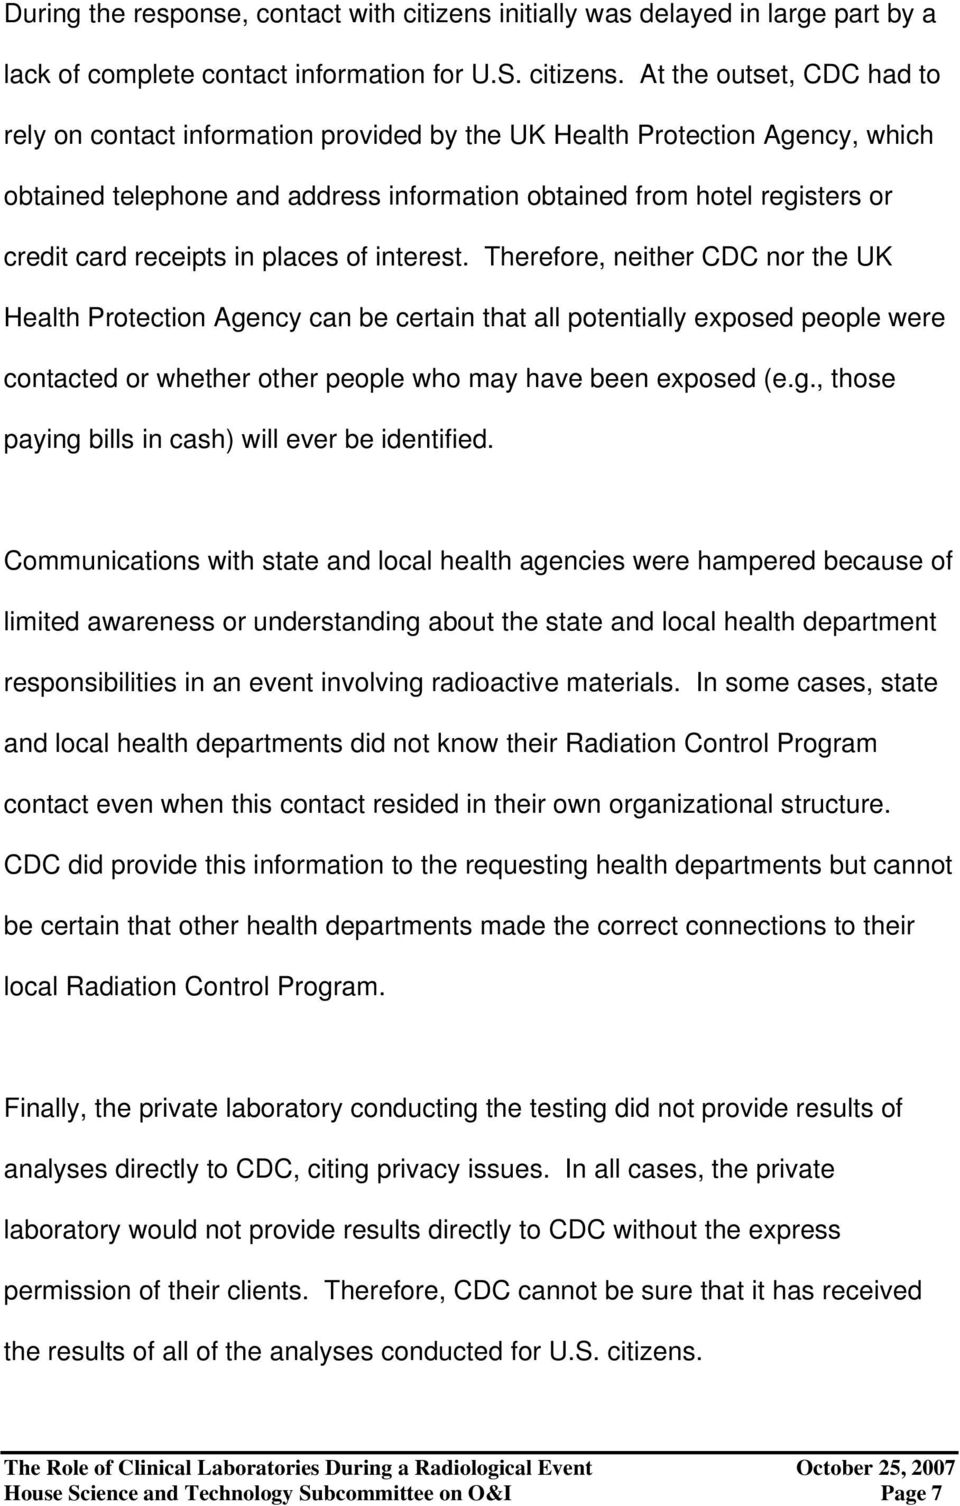 At the outset, CDC had to rely on contact information provided by the UK Health Protection Agency, which obtained telephone and address information obtained from hotel registers or credit card